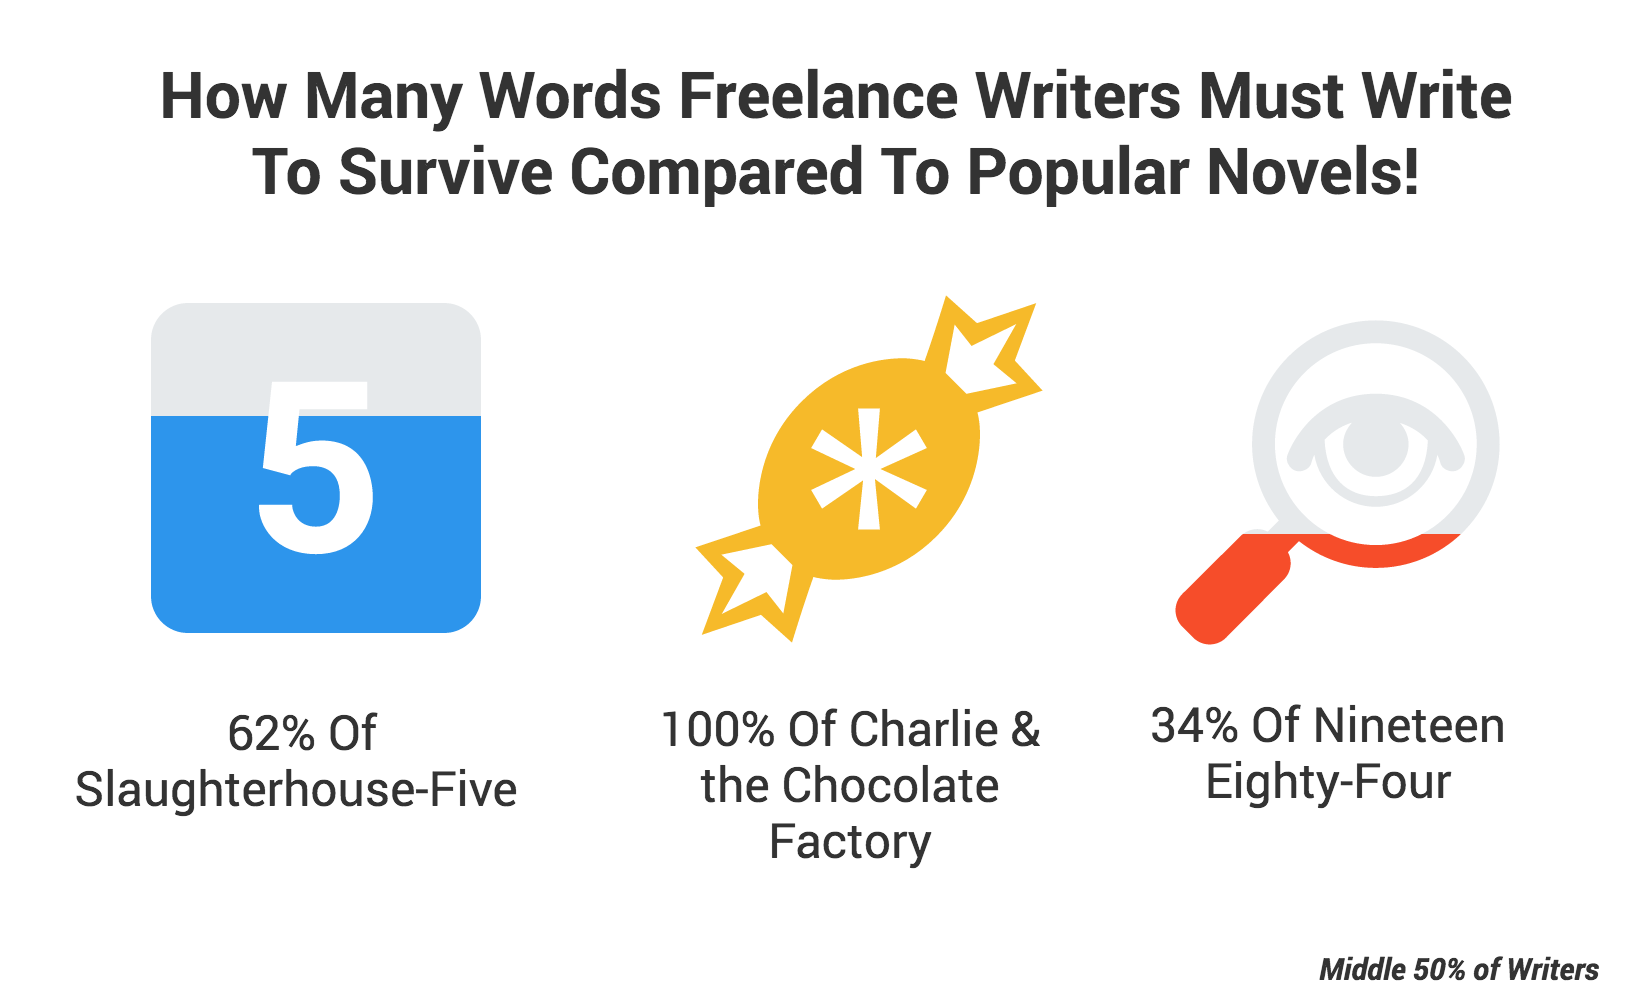 Bottom 50% writer word length compared to books